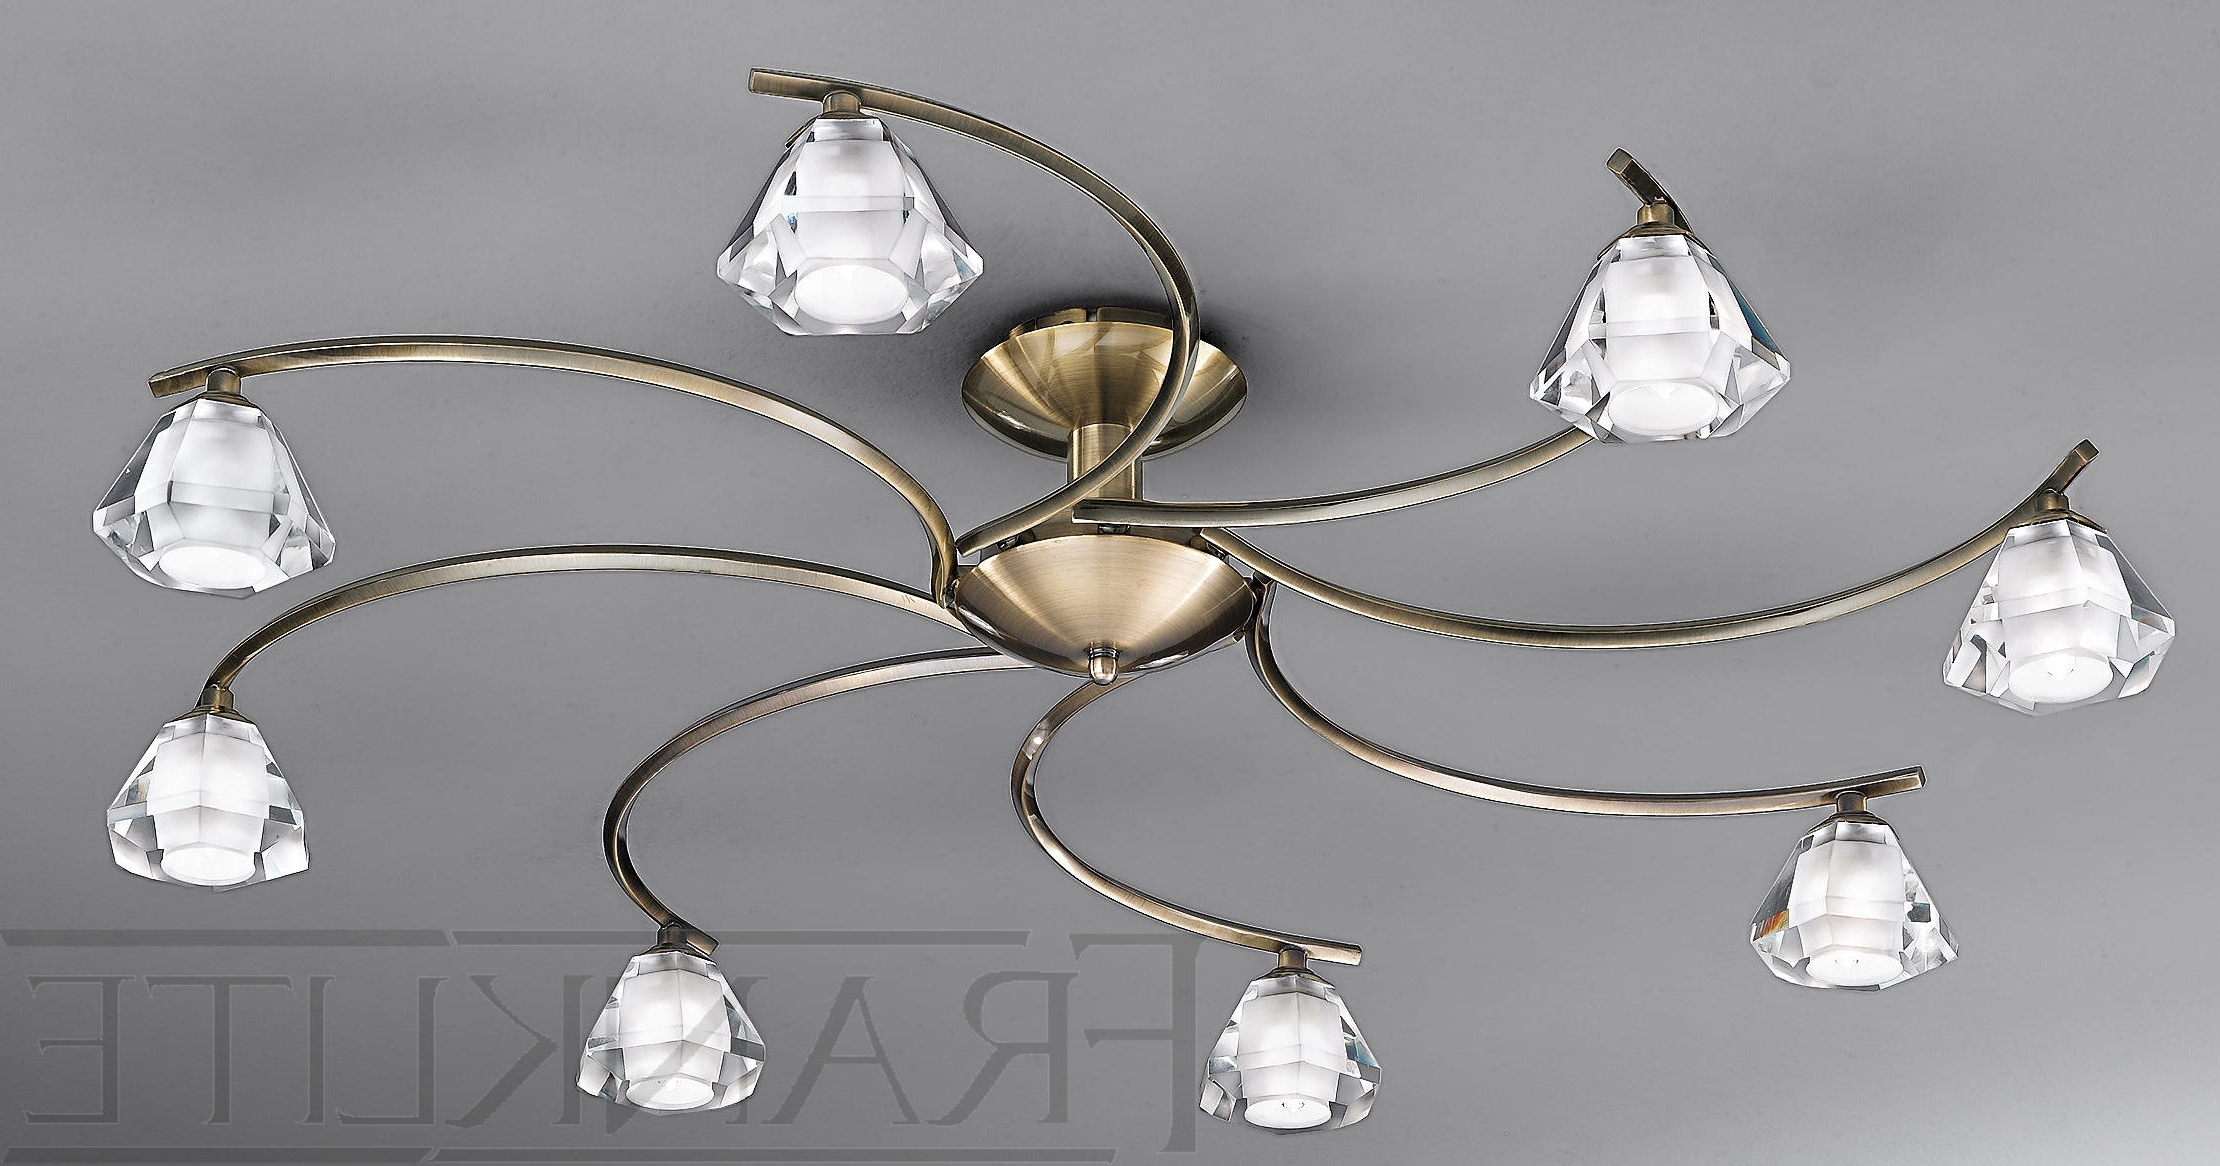 Most Popular Low Ceiling Chandeliers Within Lighting For Low Ceilings, Dramatic Lighting For Low Ceilings Design (View 13 of 20)